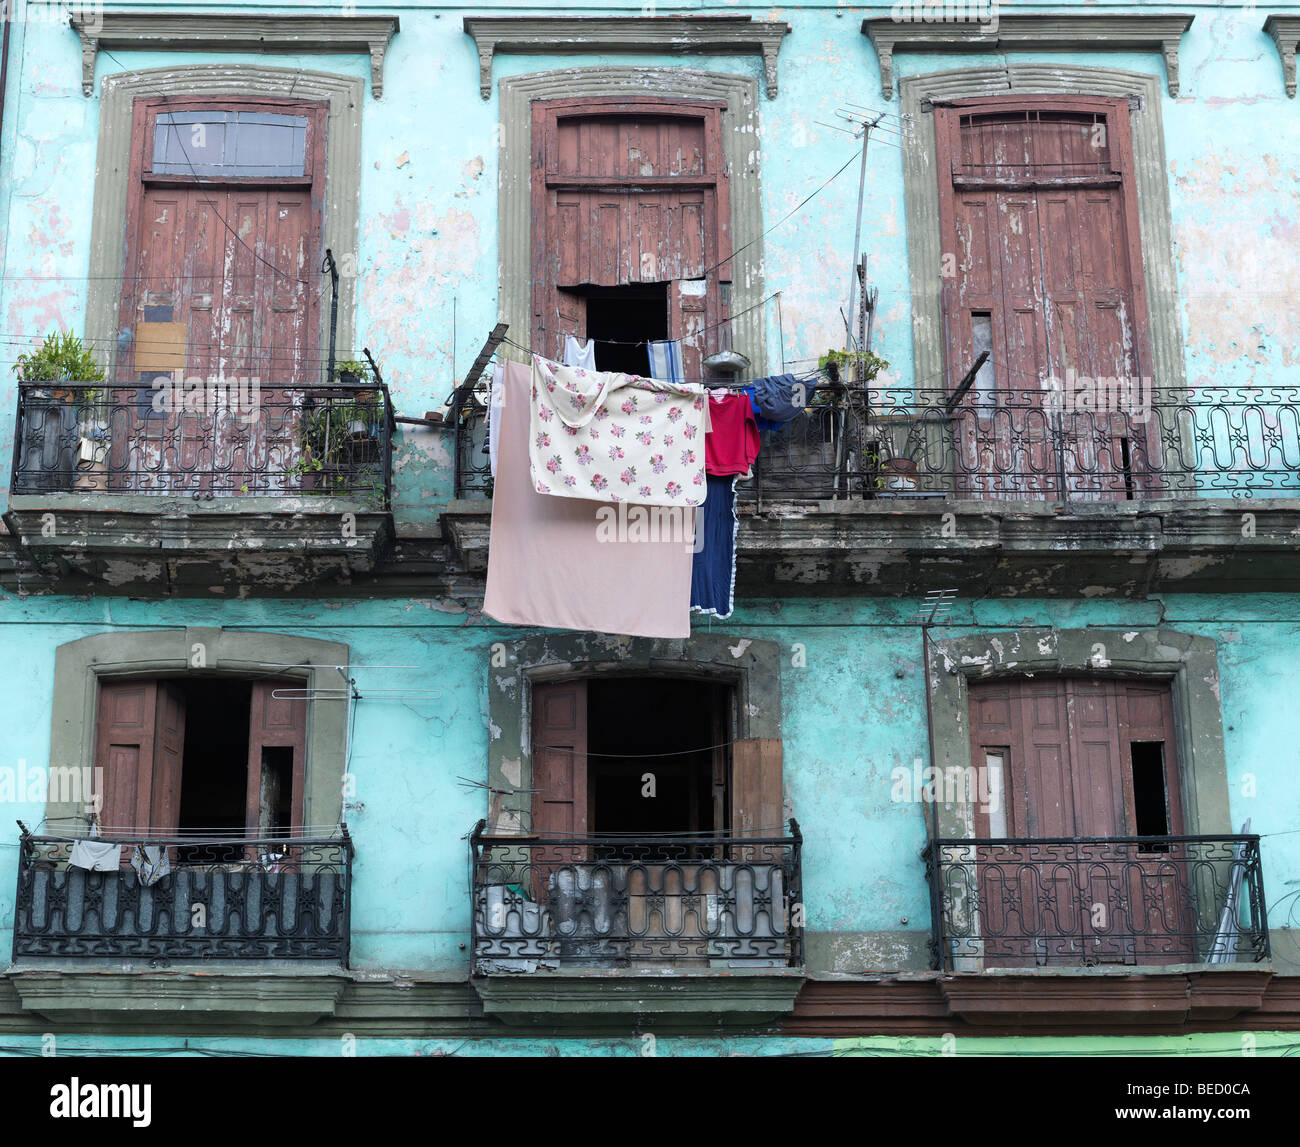 A green historic building house with balcony in the streets of Havanna, Cuba, pictured on March 1, 2009. Stock Photo